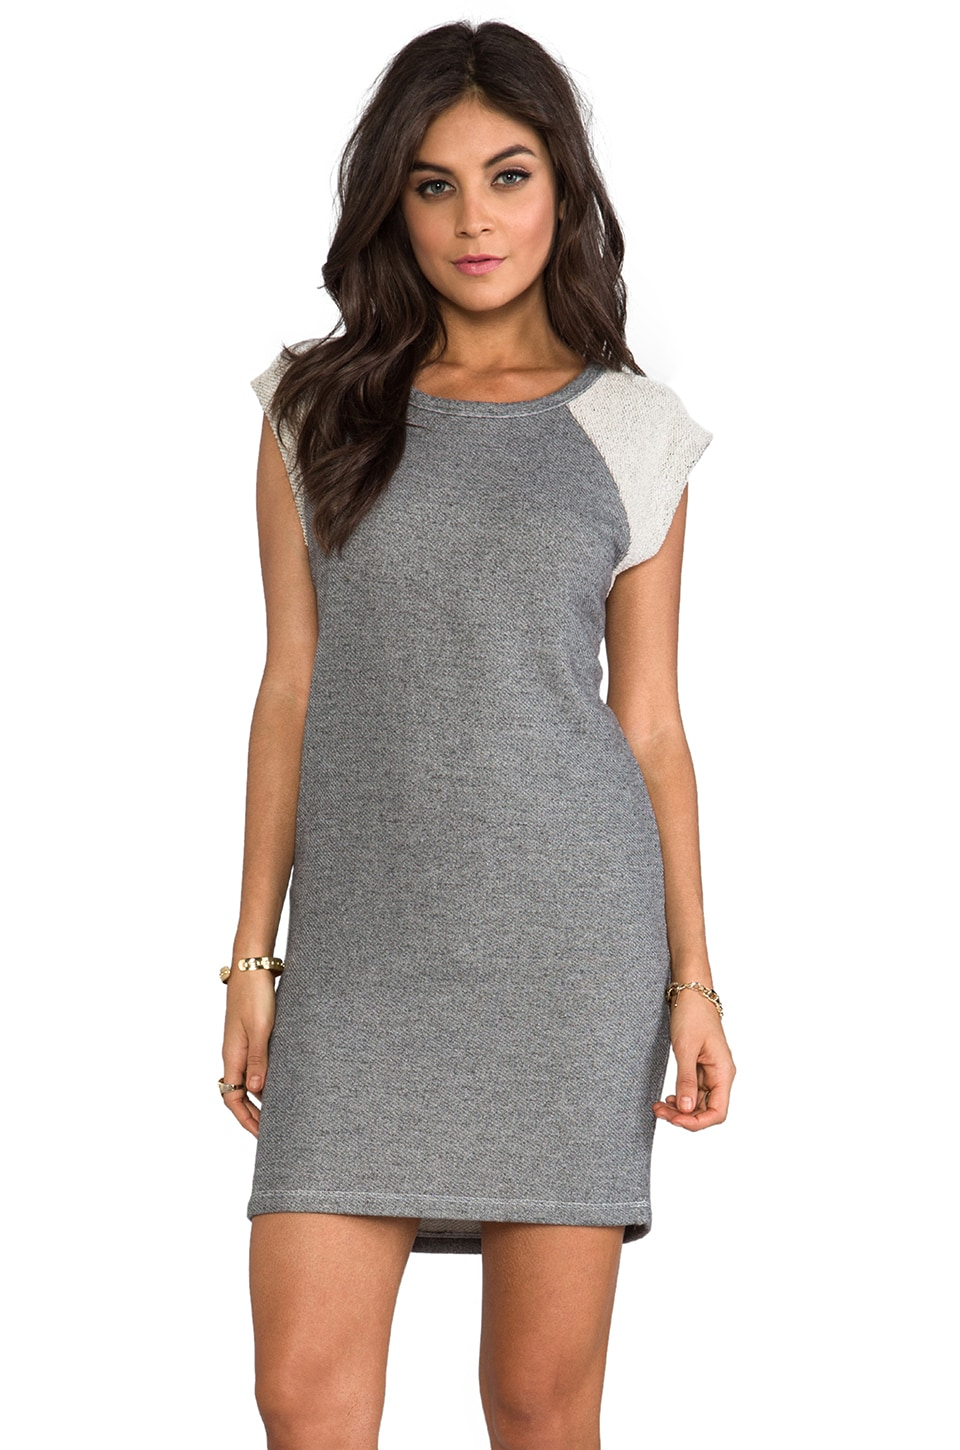 SUNDRY Terry Tee Dress in Heather Grey